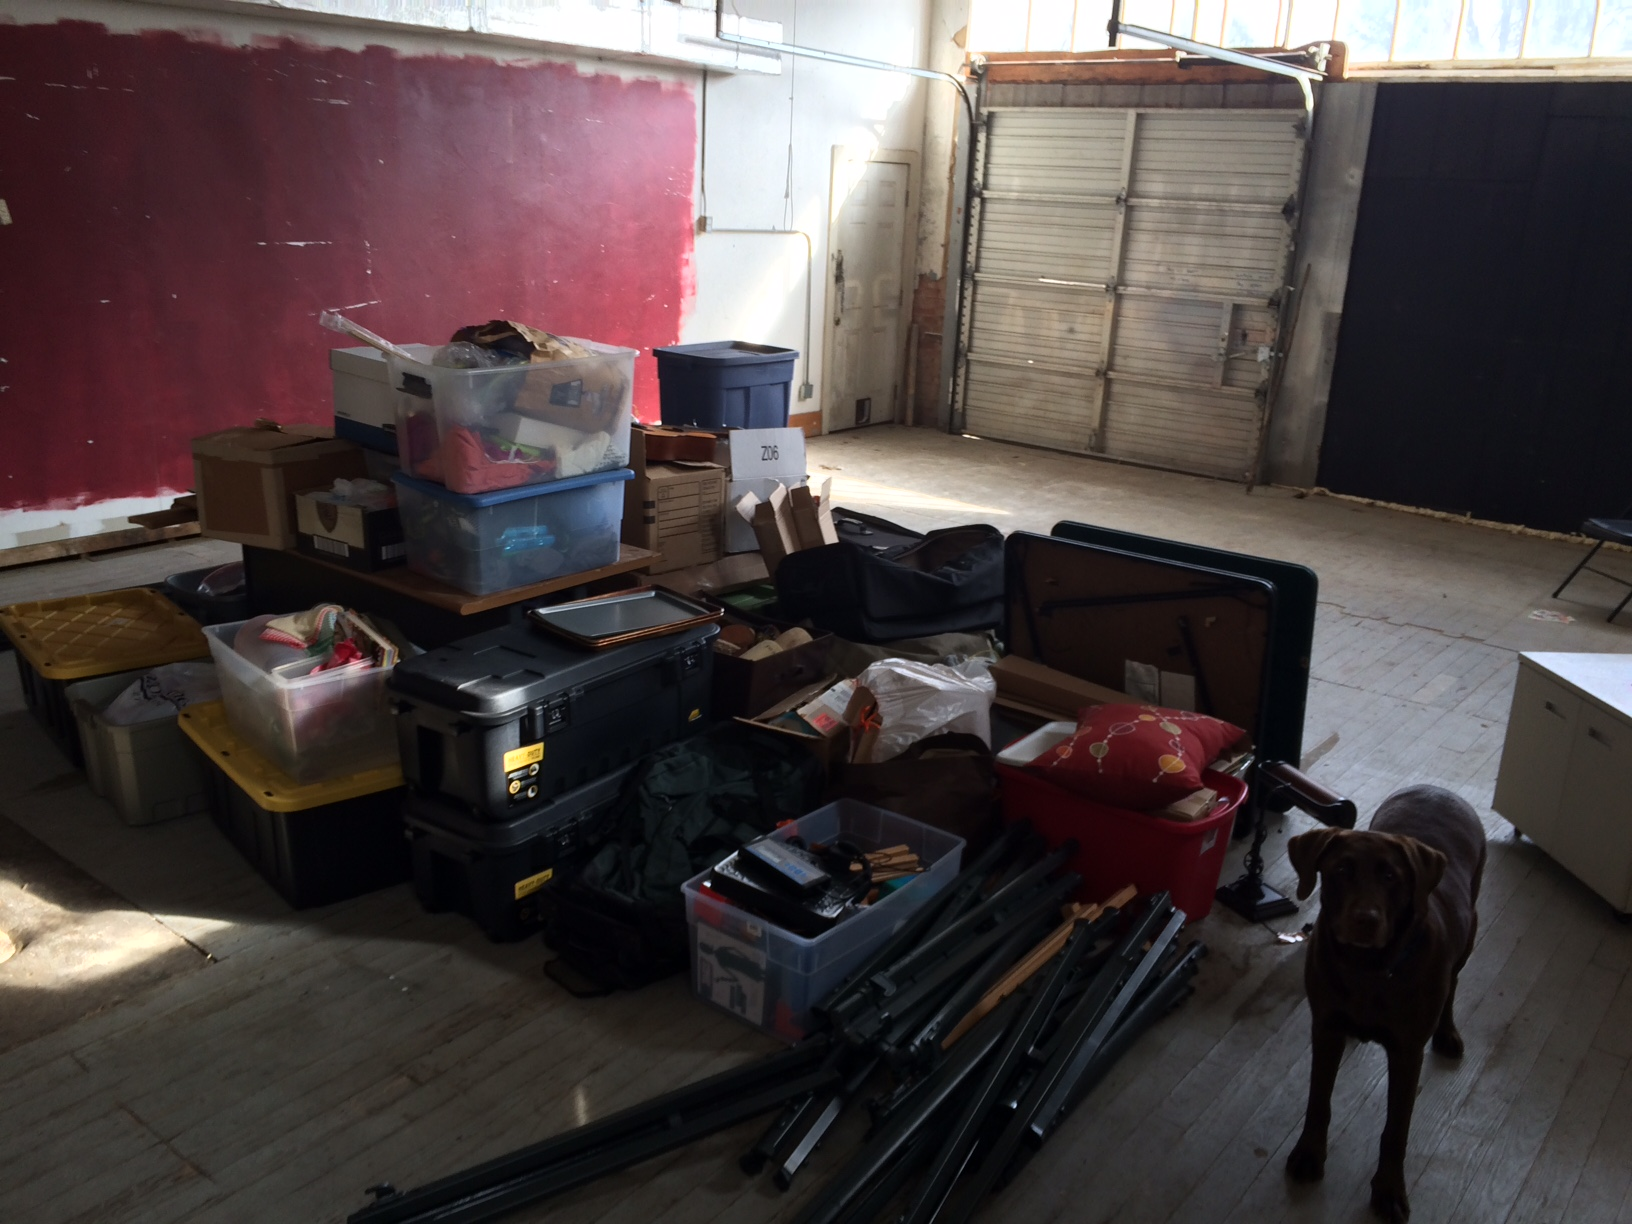 """Ella and some donations in the """"warehouse"""" section of the building."""